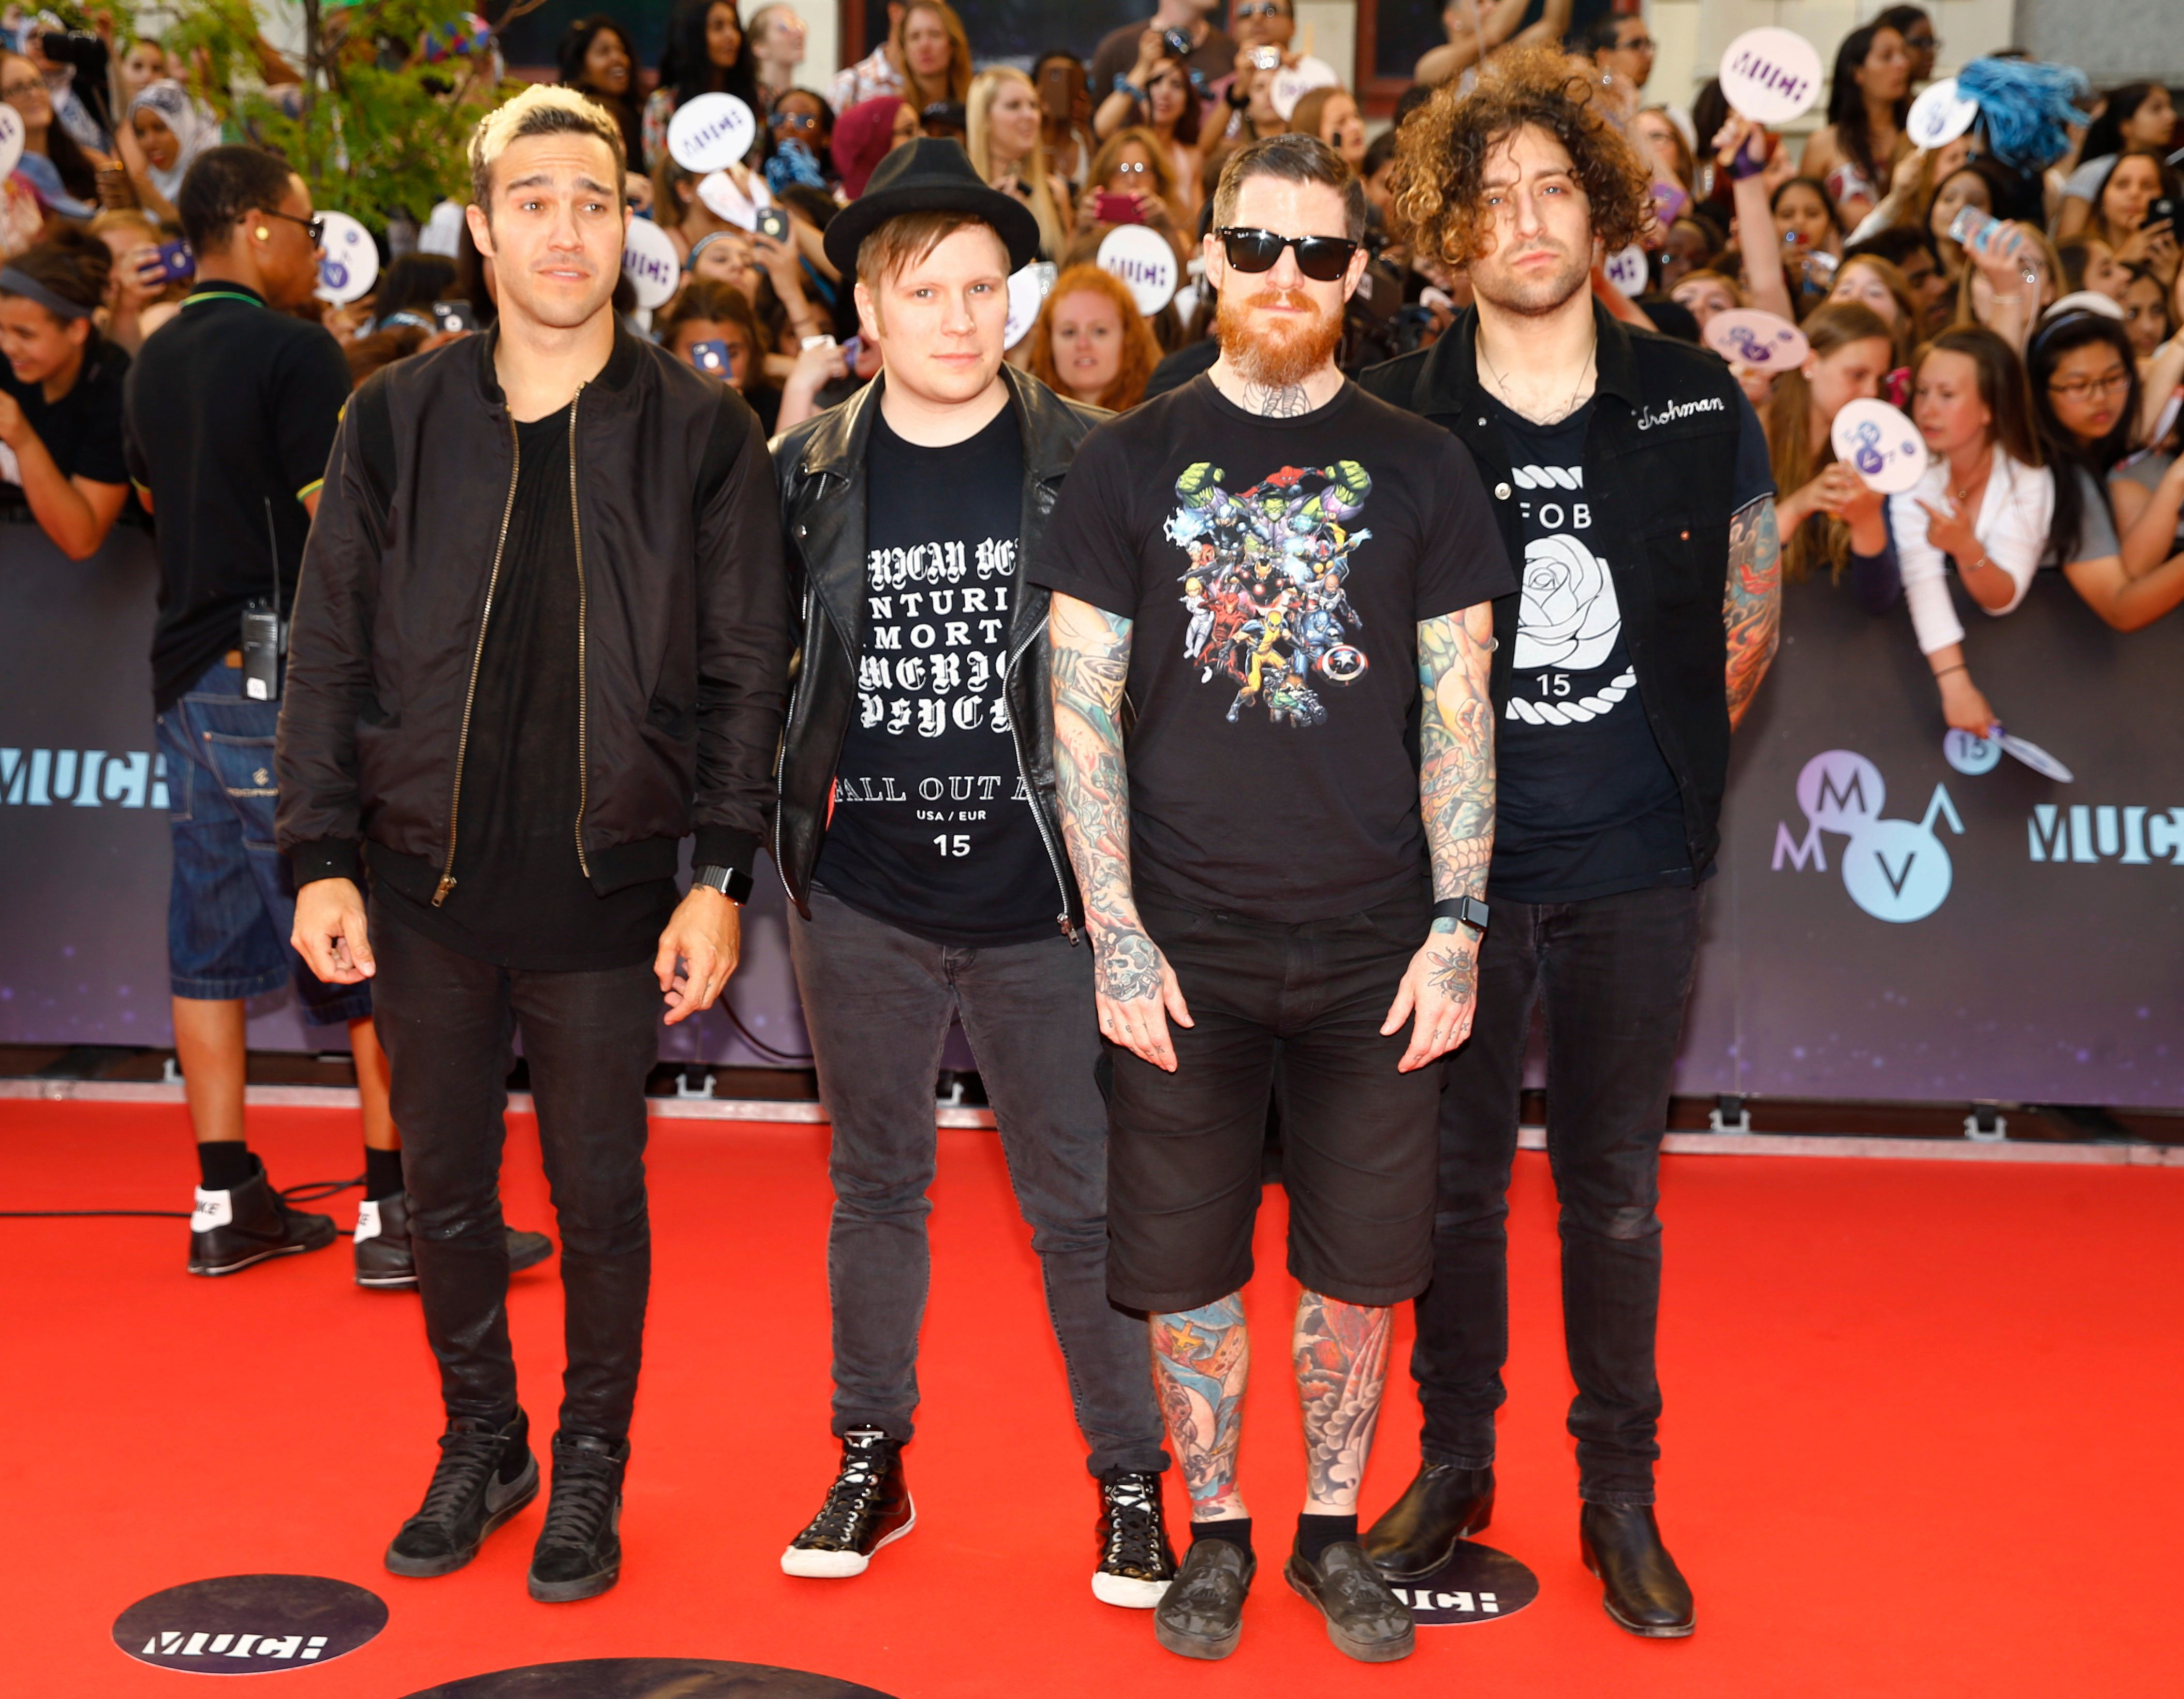 American rock band Fall Out Boy arrive at the MuchMusic Video Awards (MMVAs) in Toronto, June 21, 2015. REUTERS/Mark Blinch